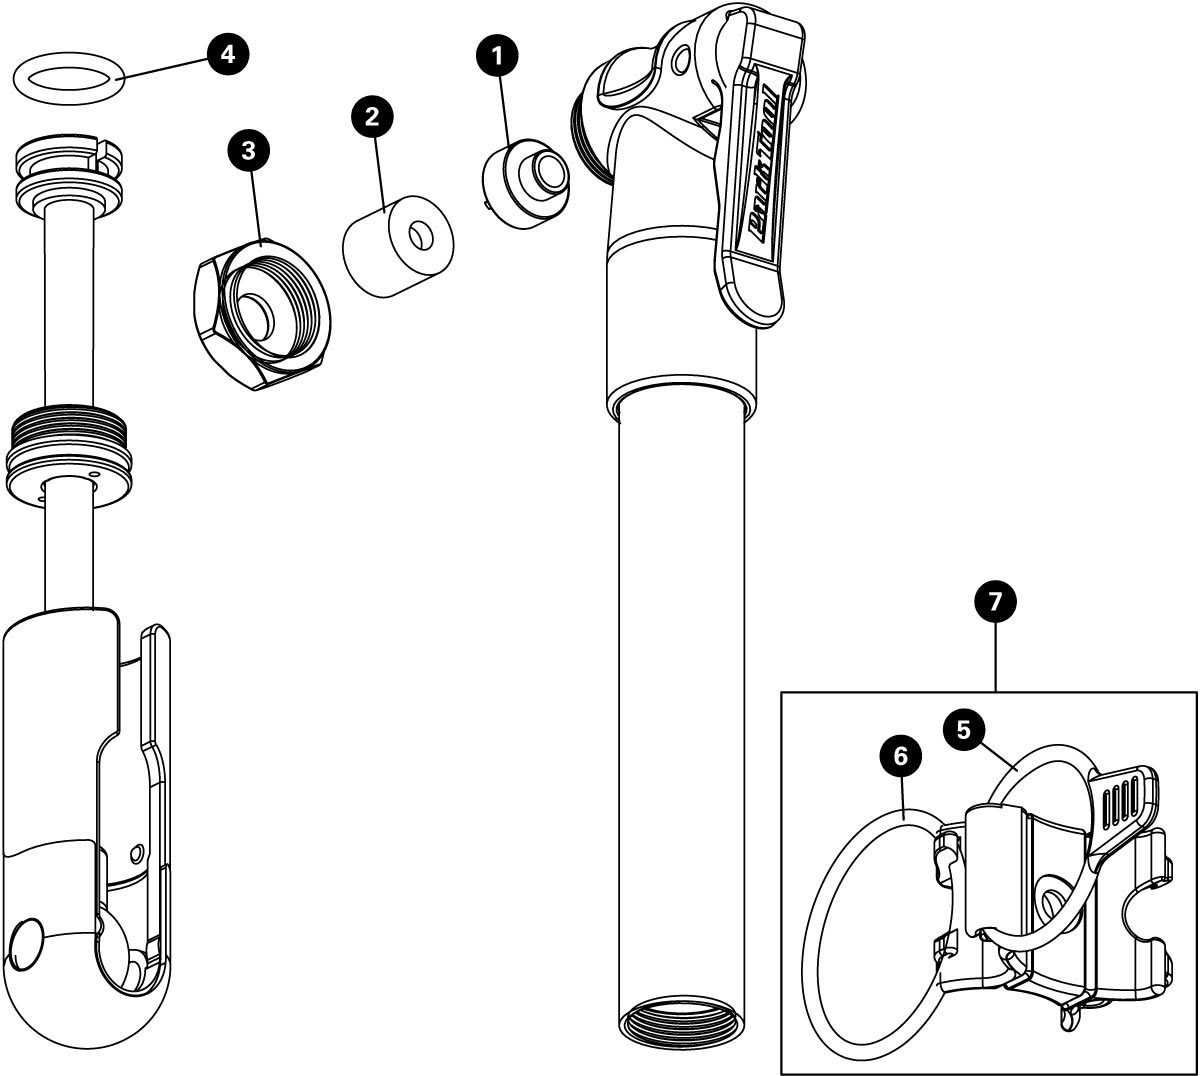 Parts diagram for PMP-3.2 Micro Pump, click to enlarge